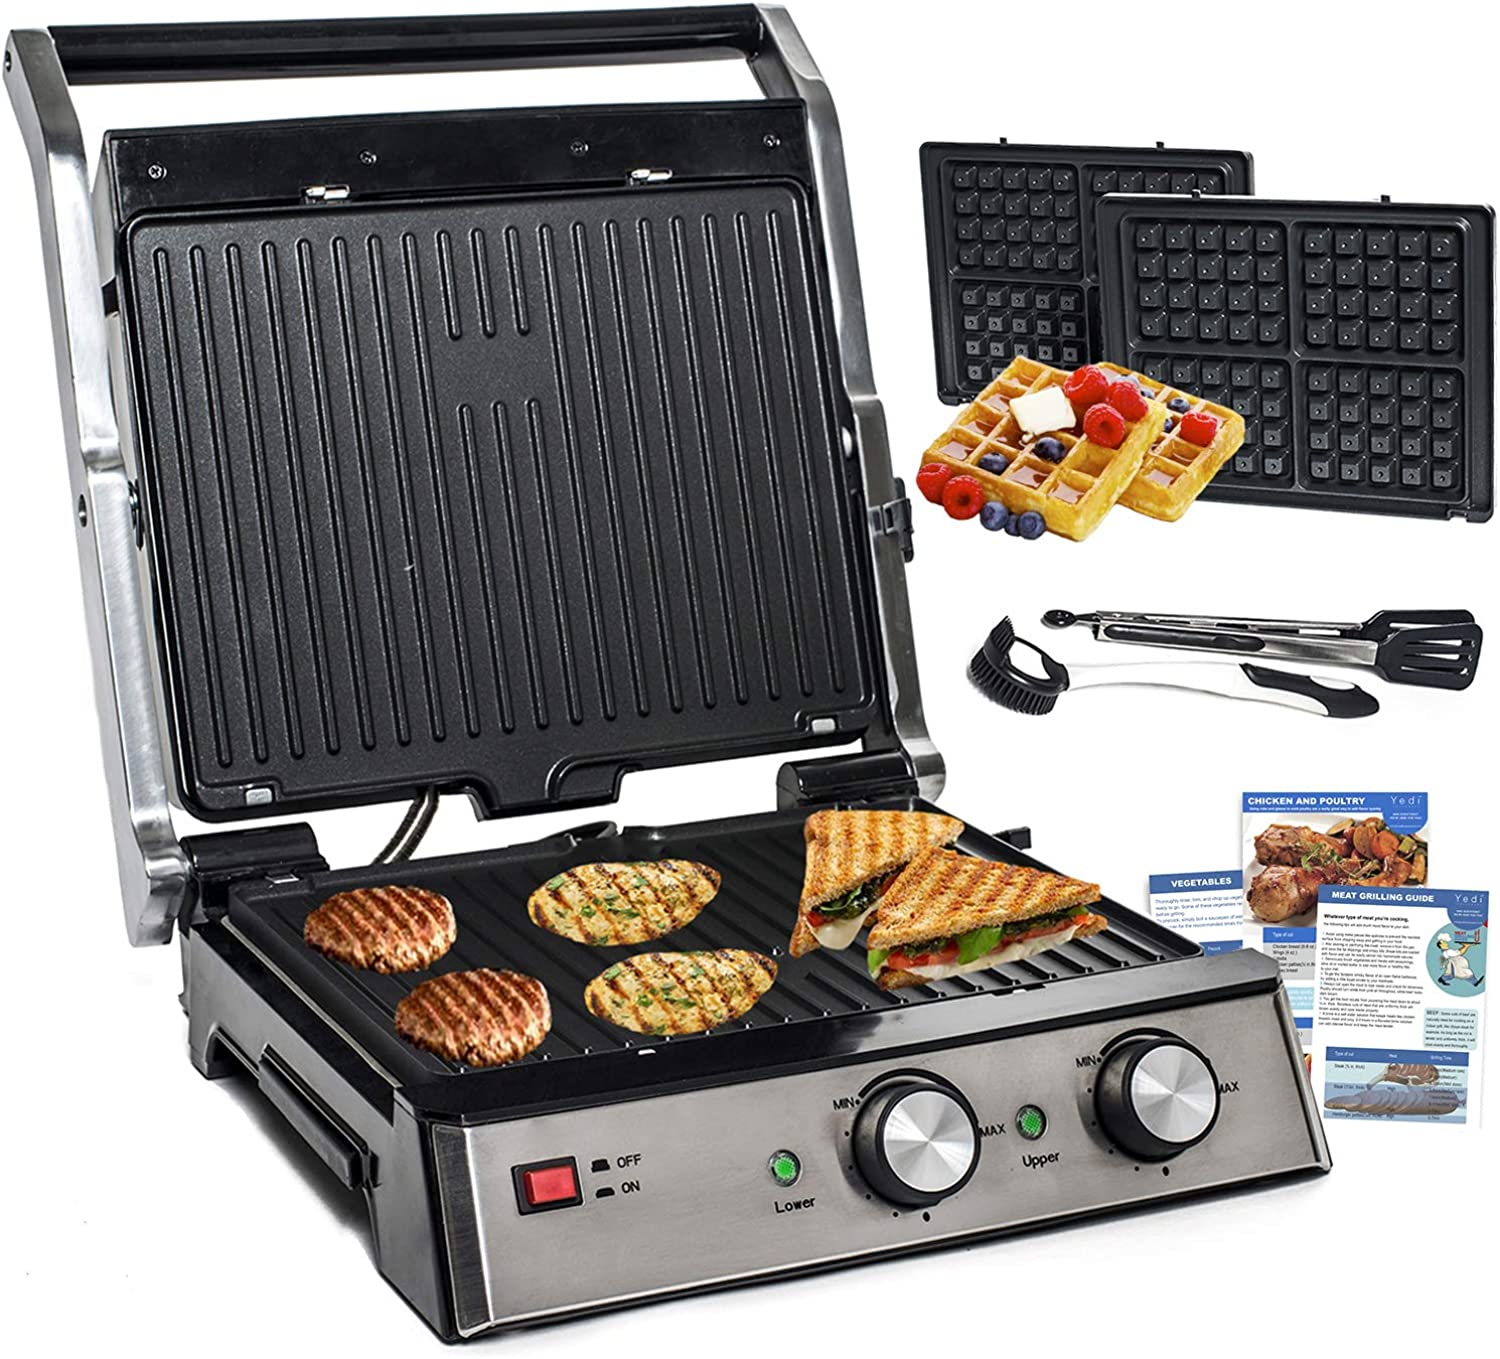 Yedi Total Package 6-in-1 Grill, Waffle Maker, Griddle, Panini Press with Deluxe Accessory